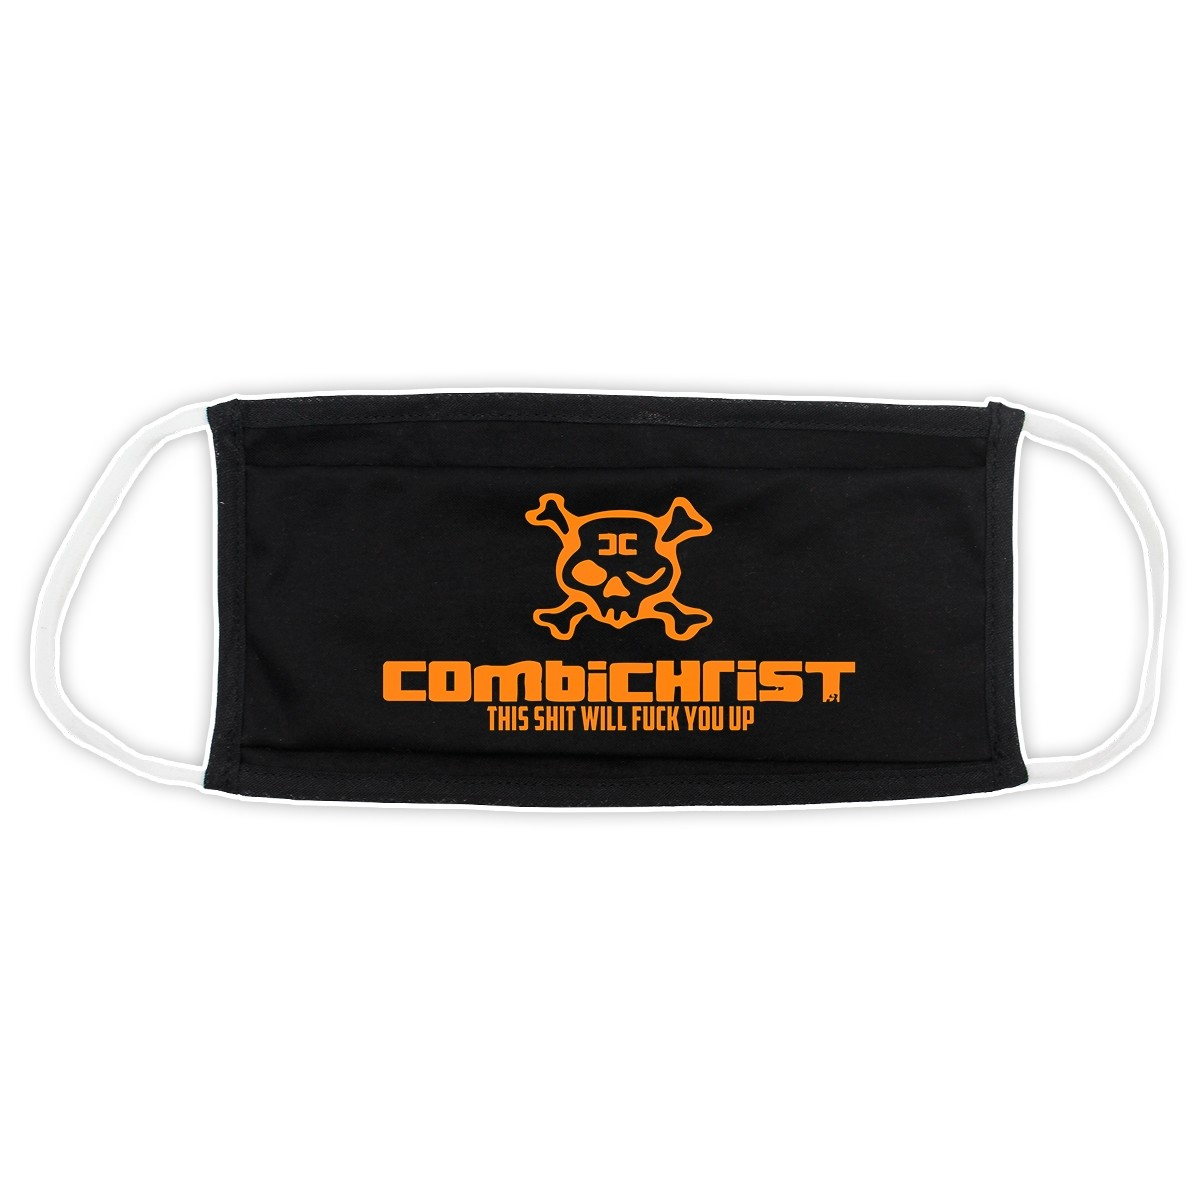 Combichrist - This Shit Will Fuck You Up - Gesichtsmaske